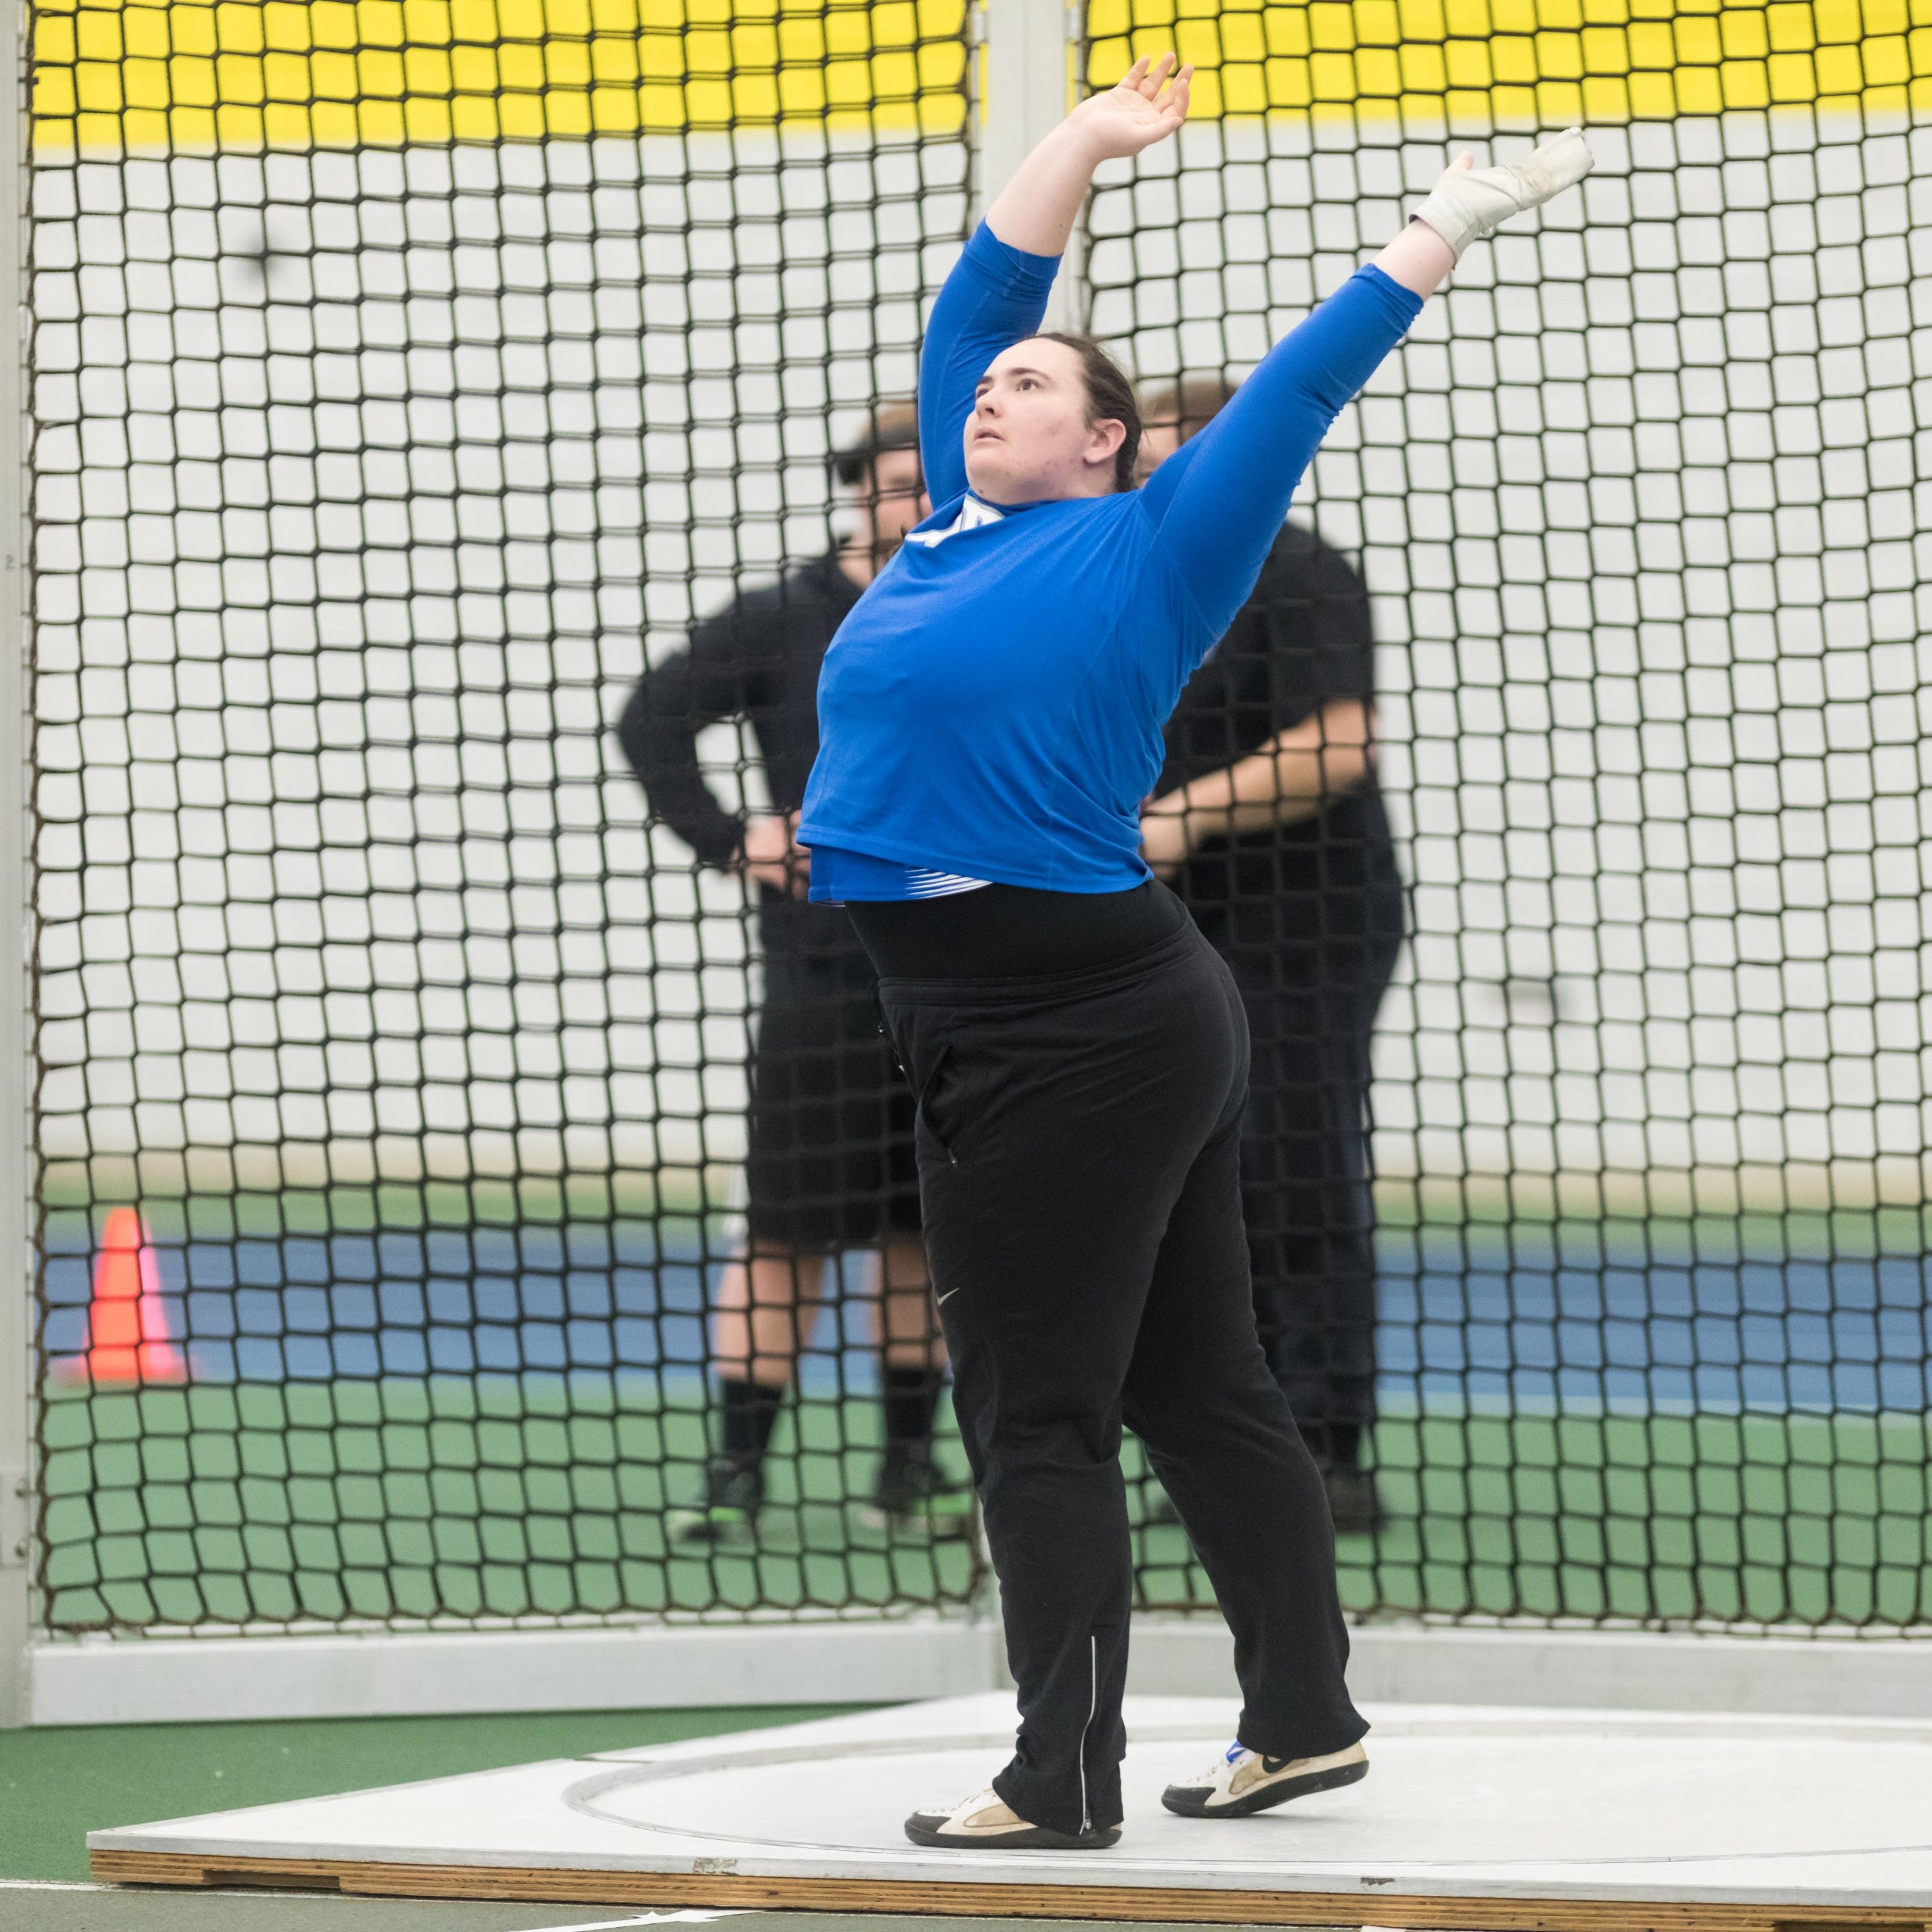 20 Questions with Wellesley thrower Helen Andersen of Madison